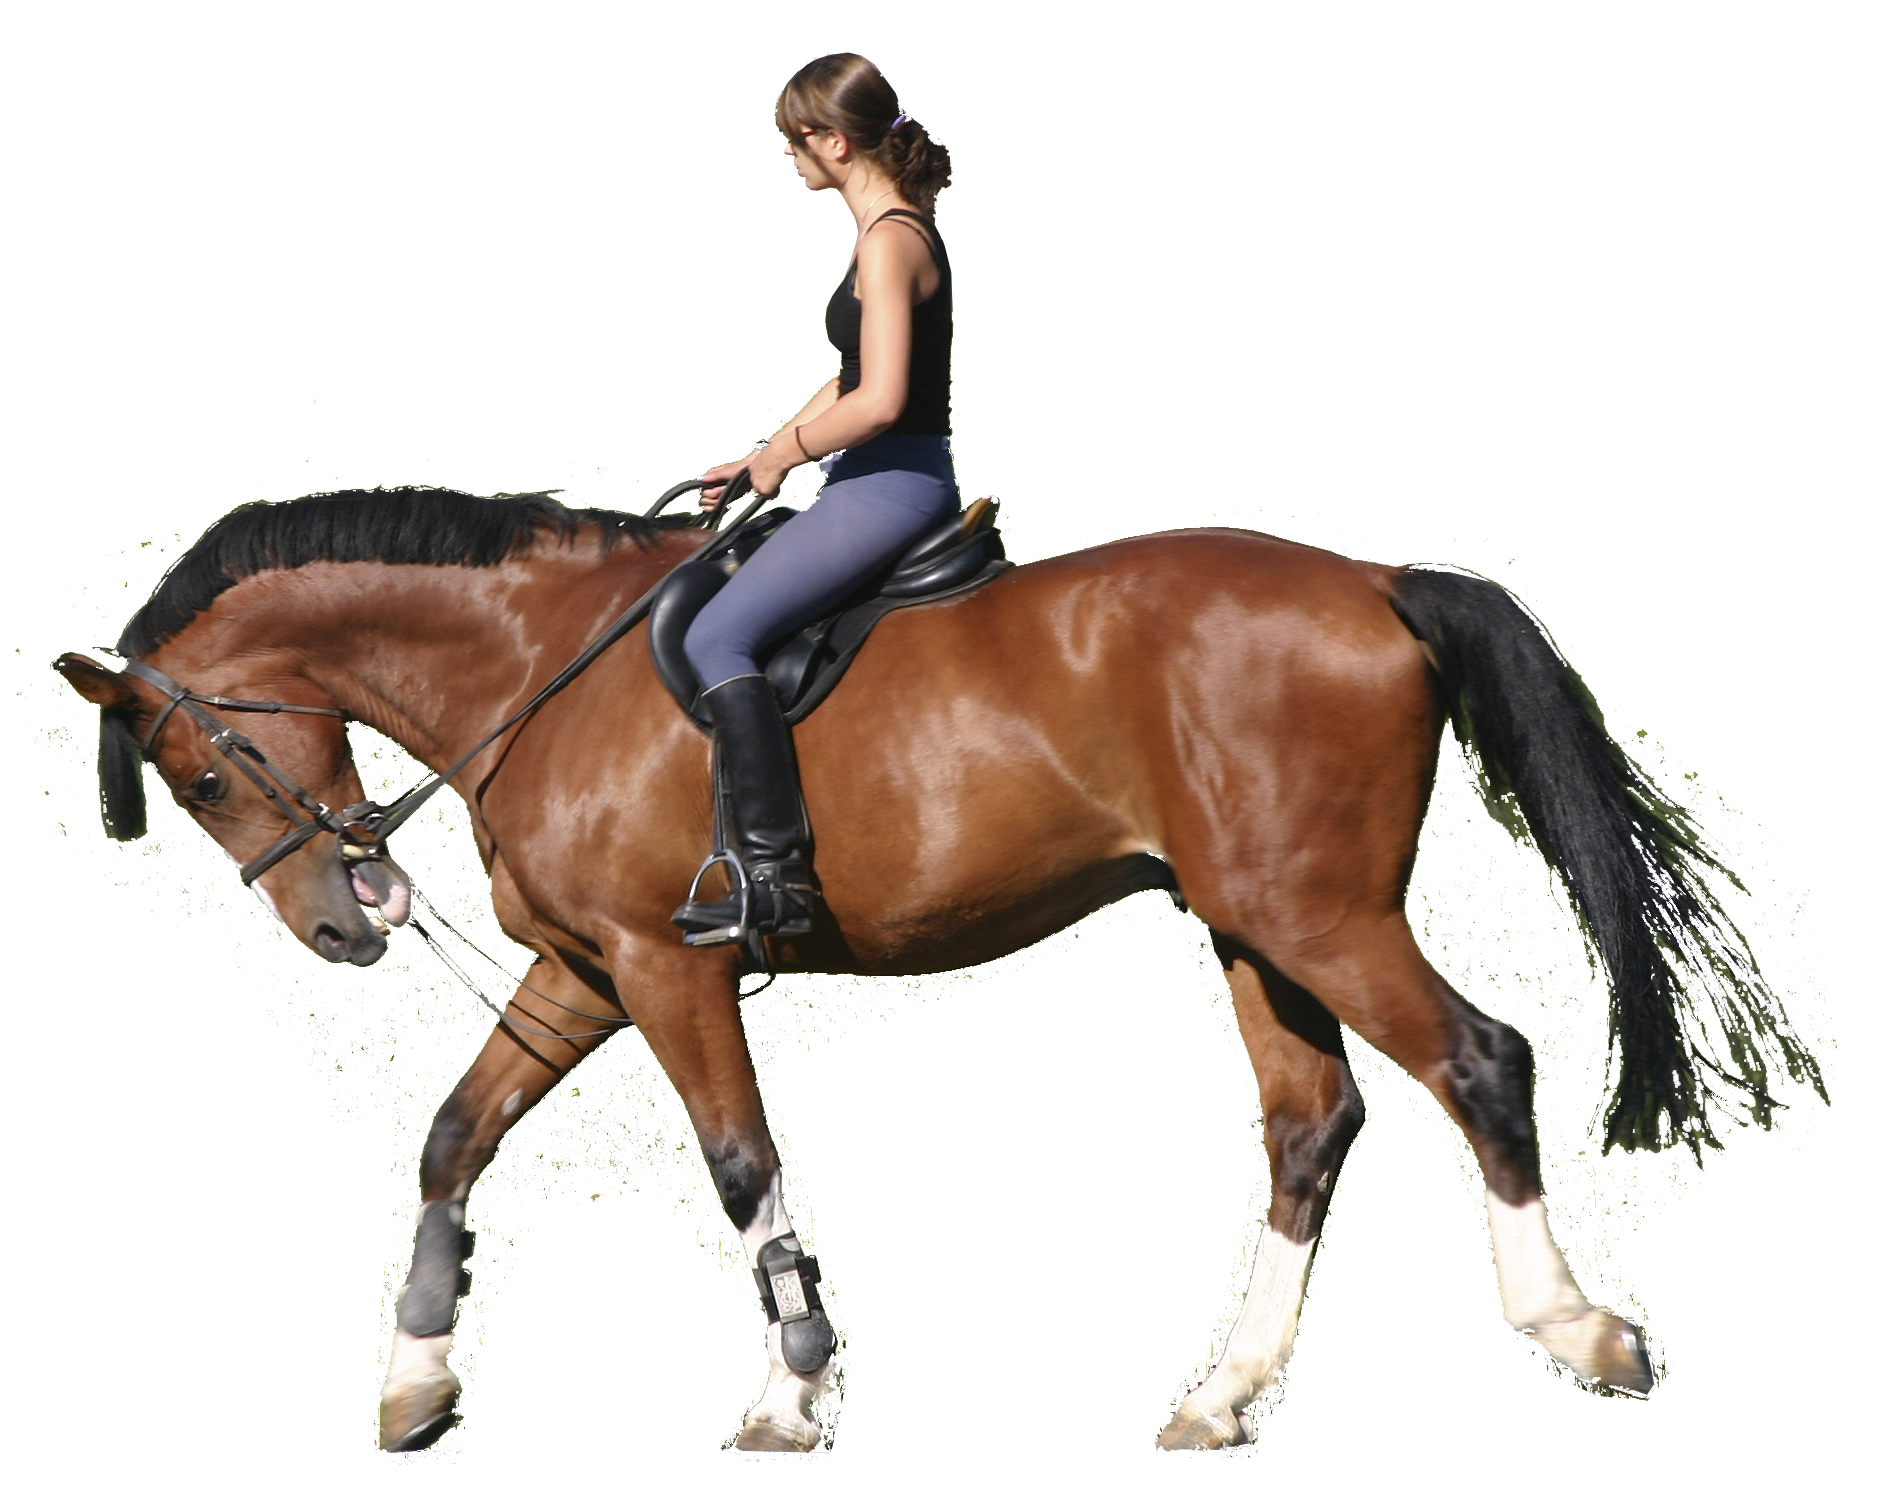 PNG Horse Riding Transparent Horse Riding.PNG Images..